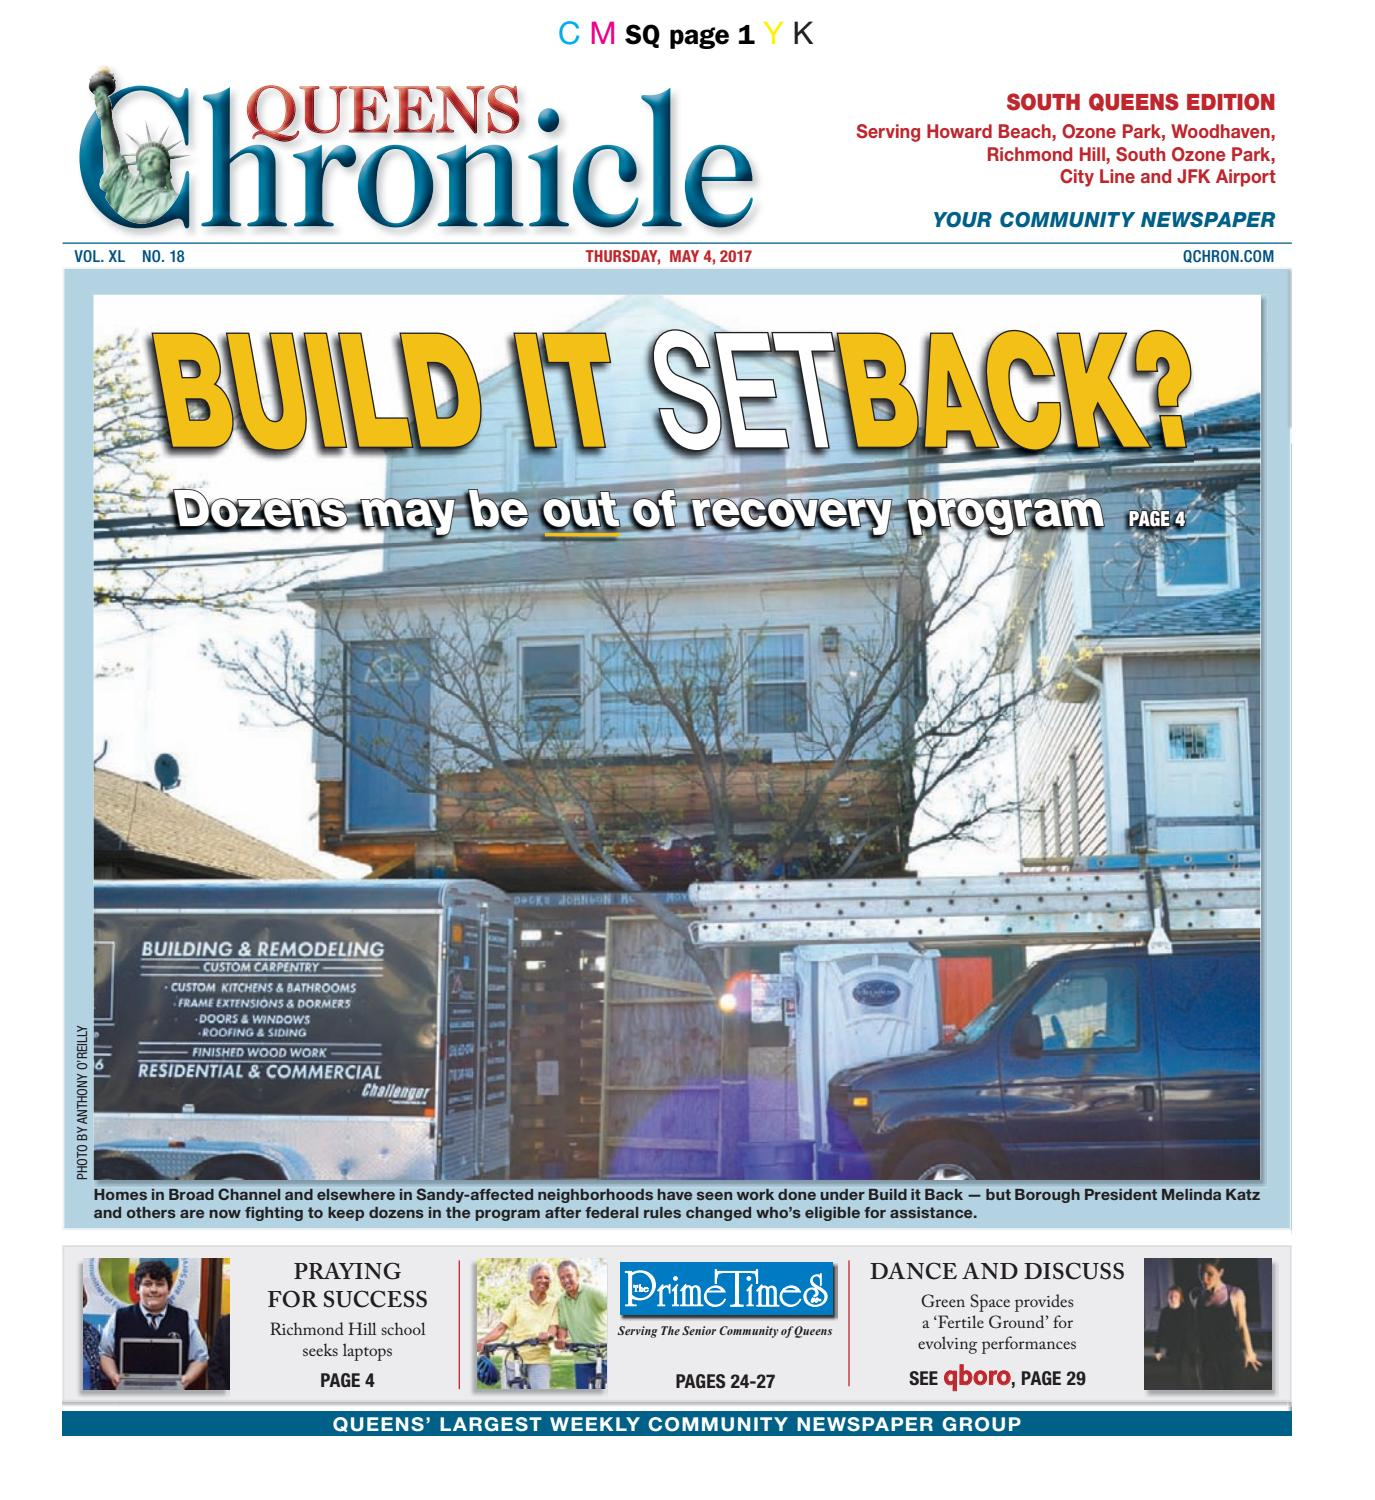 Queens Chronicle South Edition 05-04-17 by Queens Chronicle - issuu